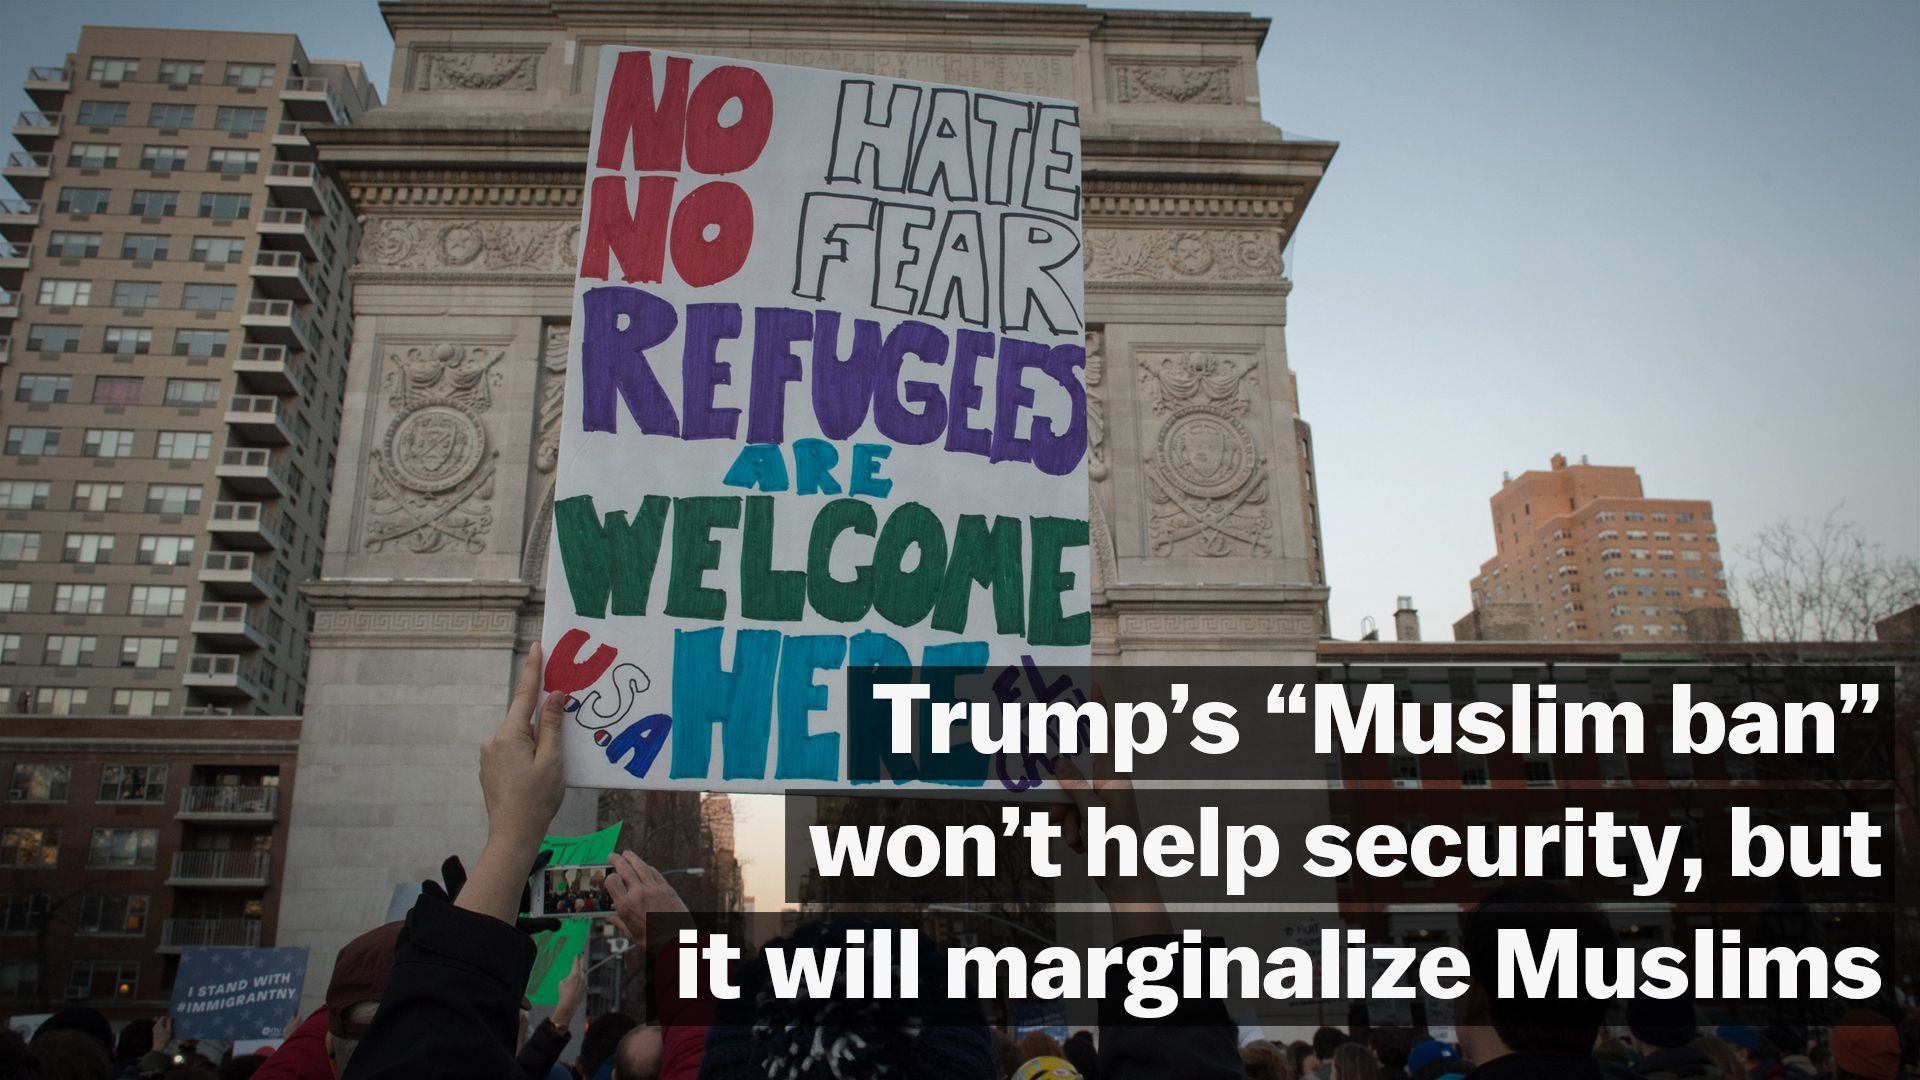 Trump says his refugee ban is about protecting America. It's really about Islamophobia.